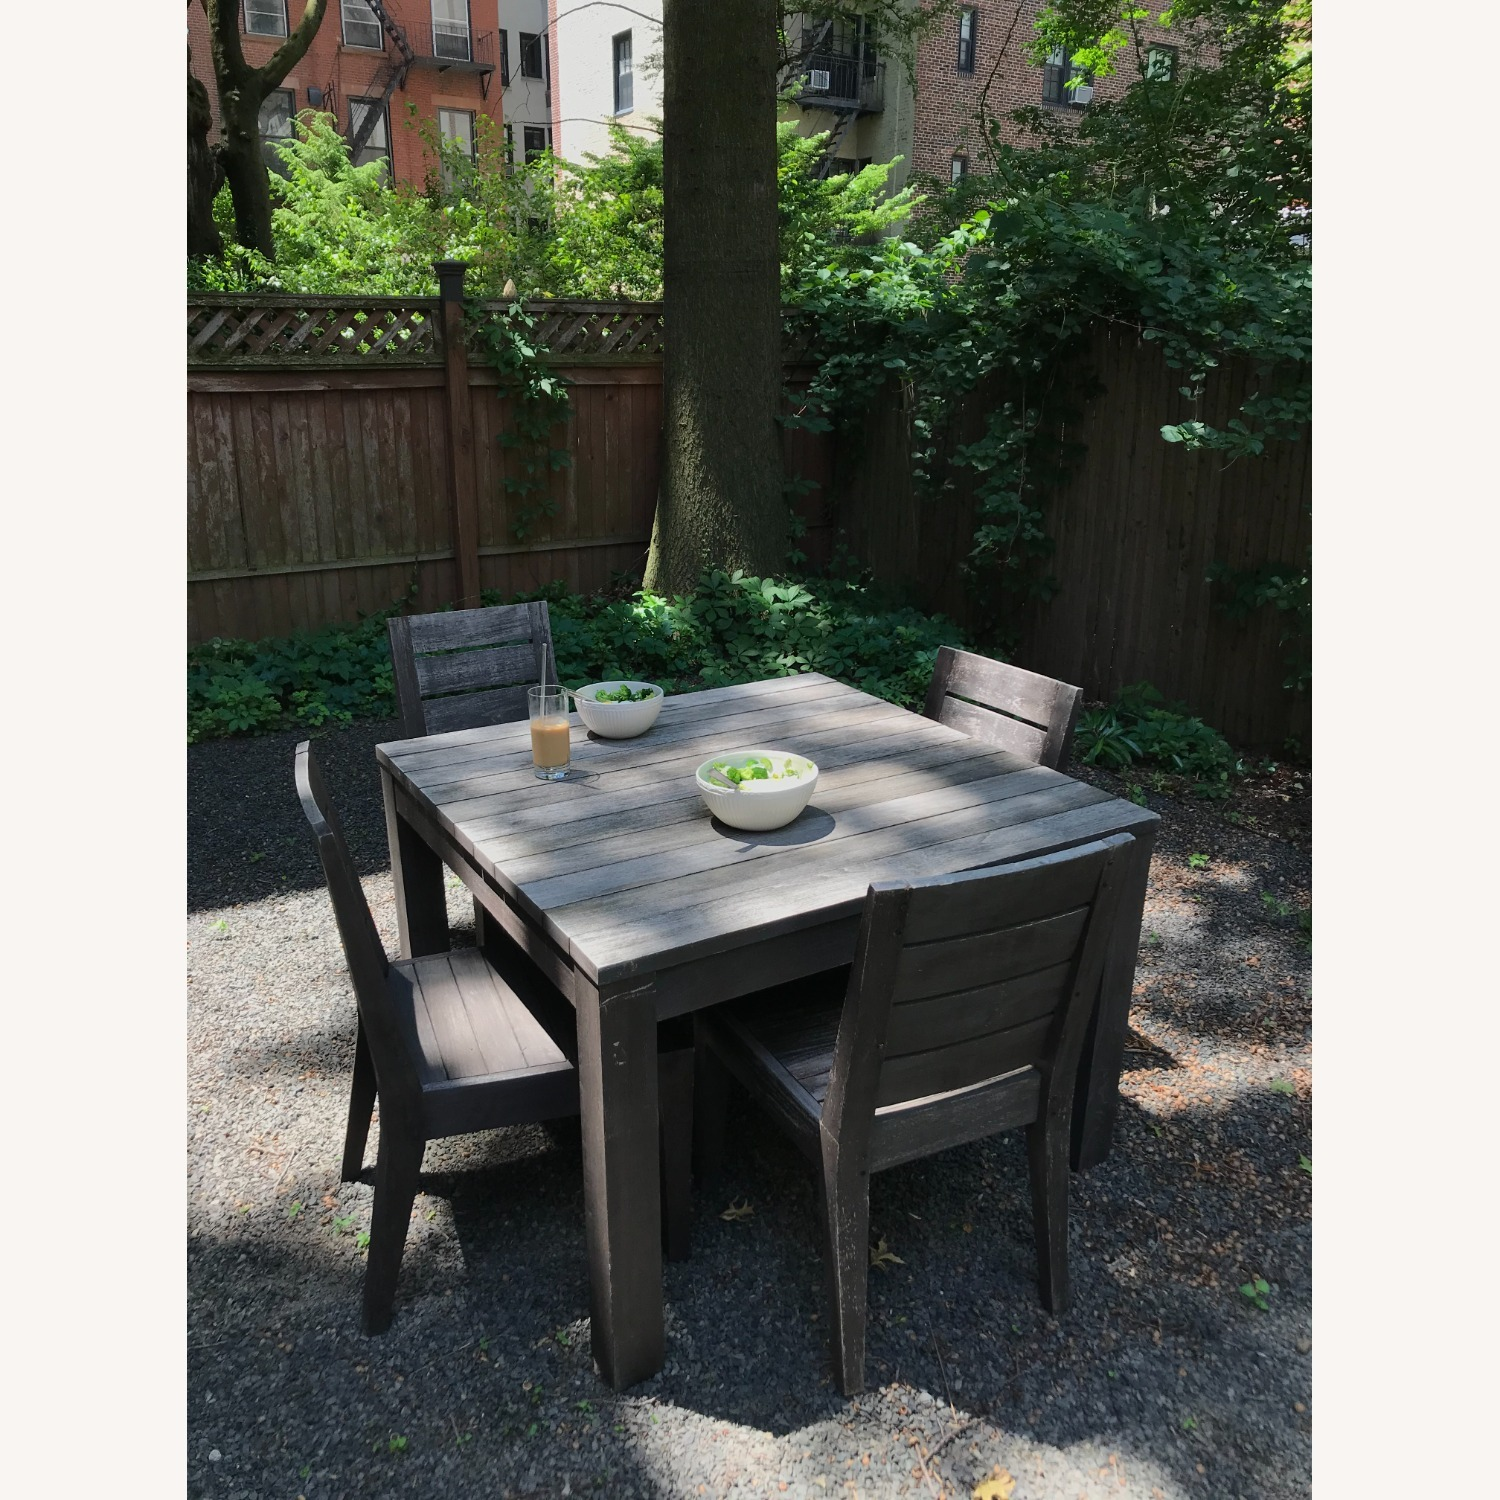 Restoration Hardware Teak Table and Side Chairs - image-2